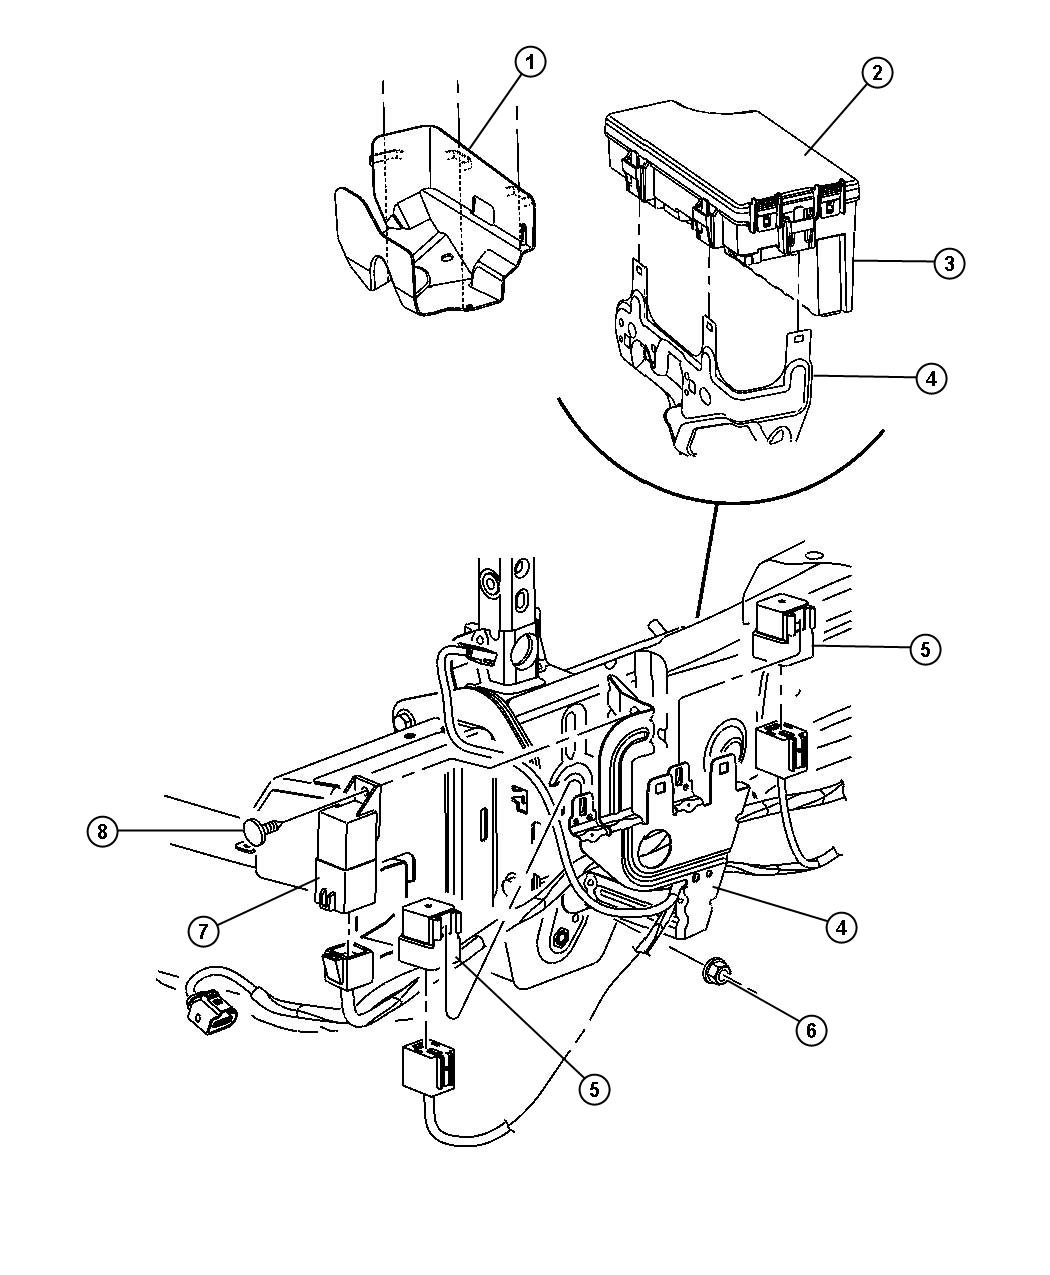 Discussion t23581 ds668765 besides 2000 vw vr6 engine diagram furthermore dorman ignition switch wiring diagram as